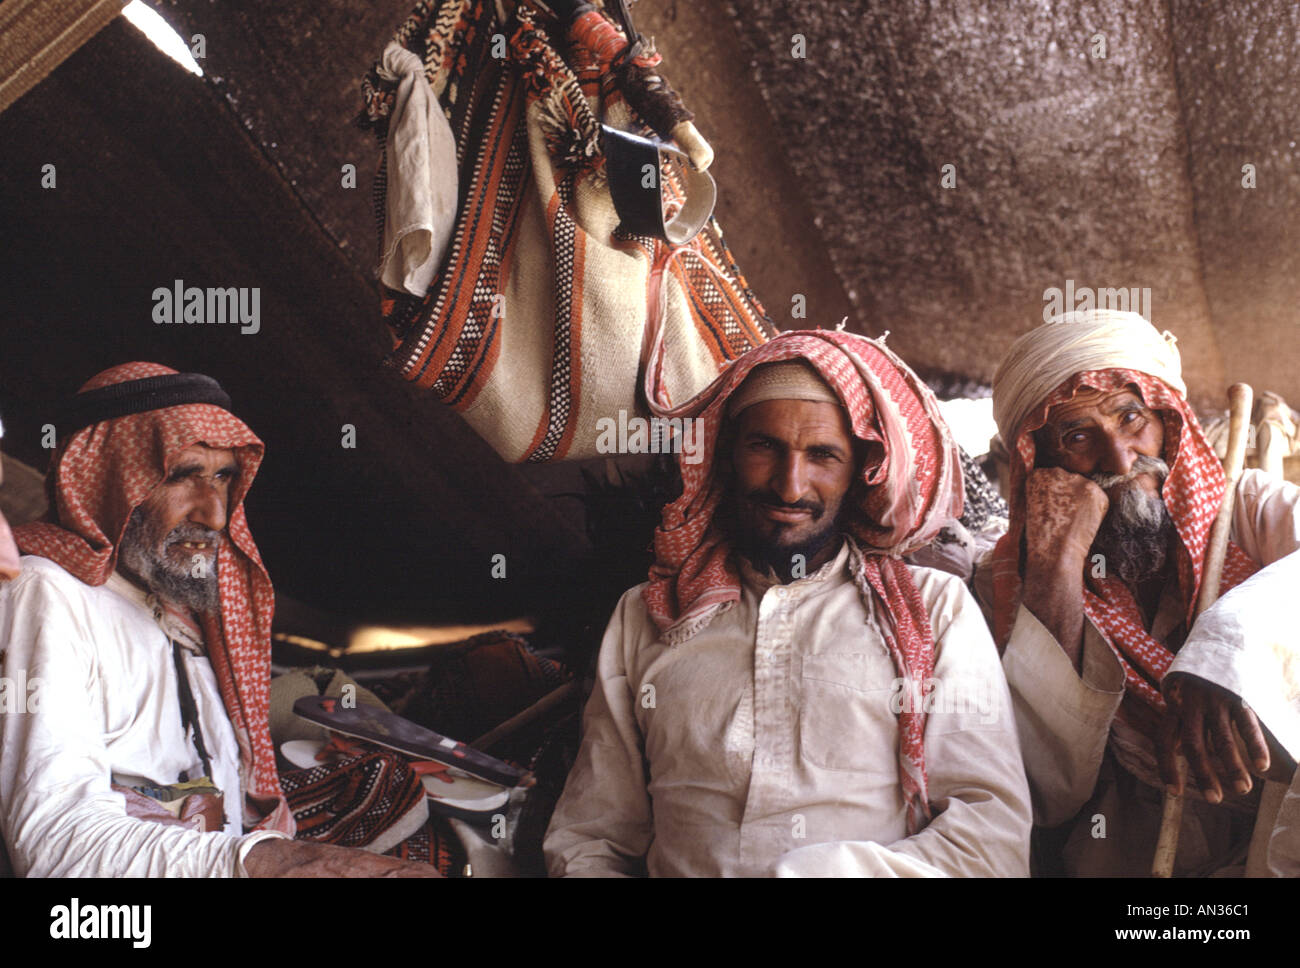 Saudi Arabia, Empty Quarter. Beduin of the al Murrah tribe rest in their tent. They call themselves Arabs of the Arabs. - Stock Image